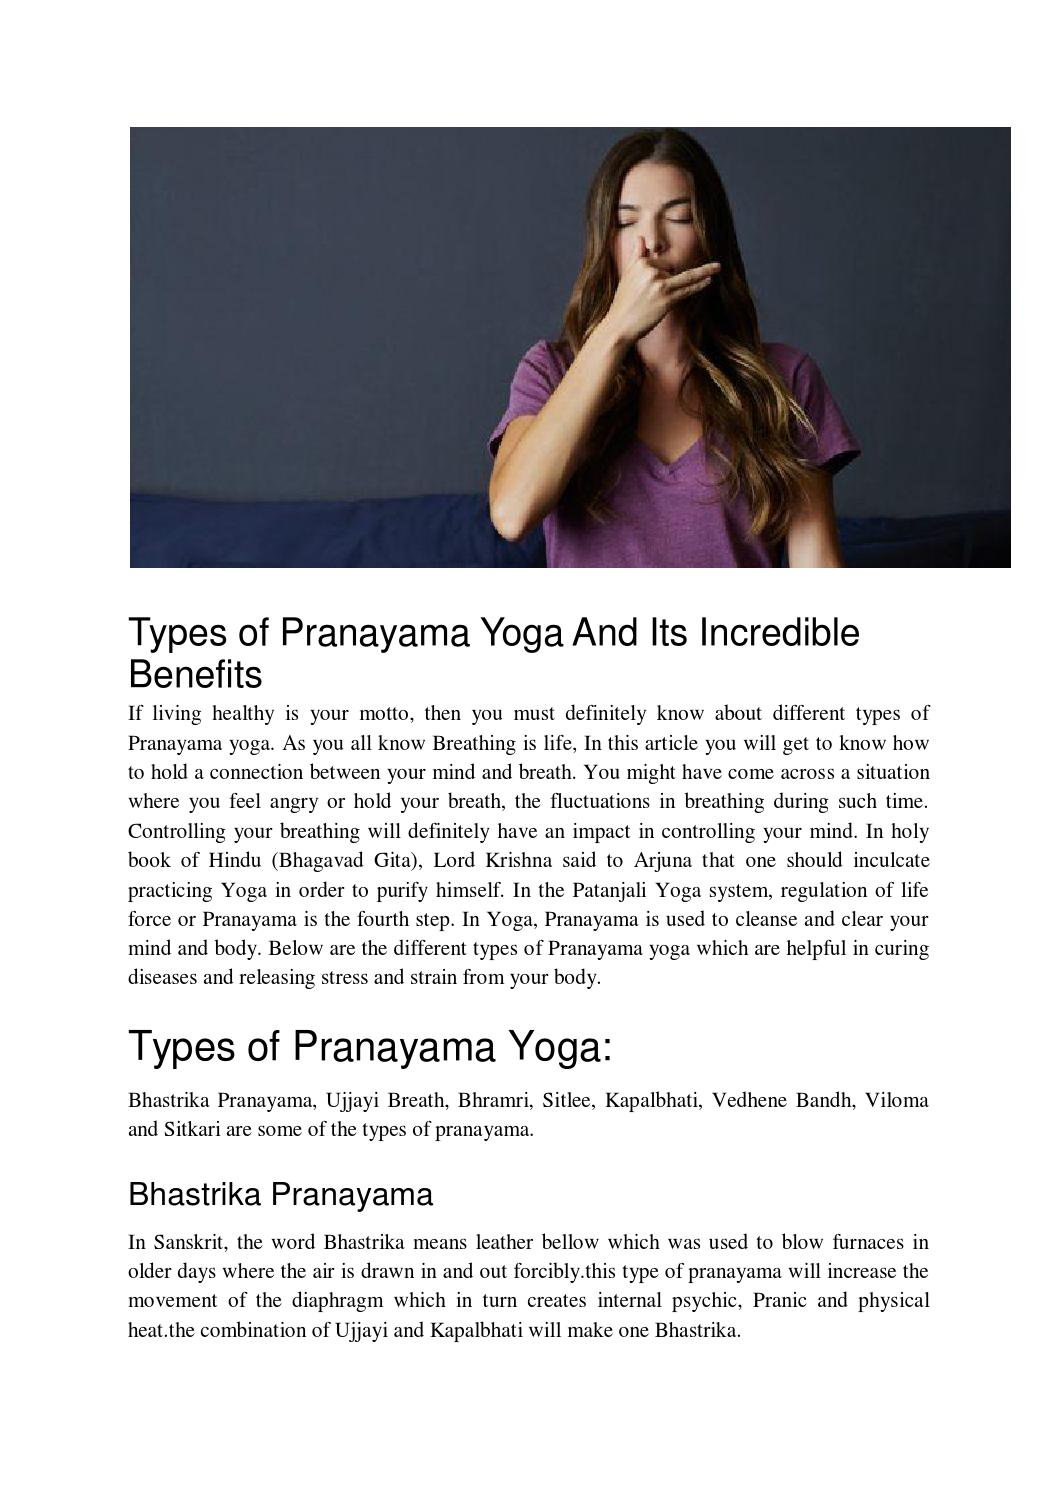 Types of pranayama yoga and its incredible benefits by